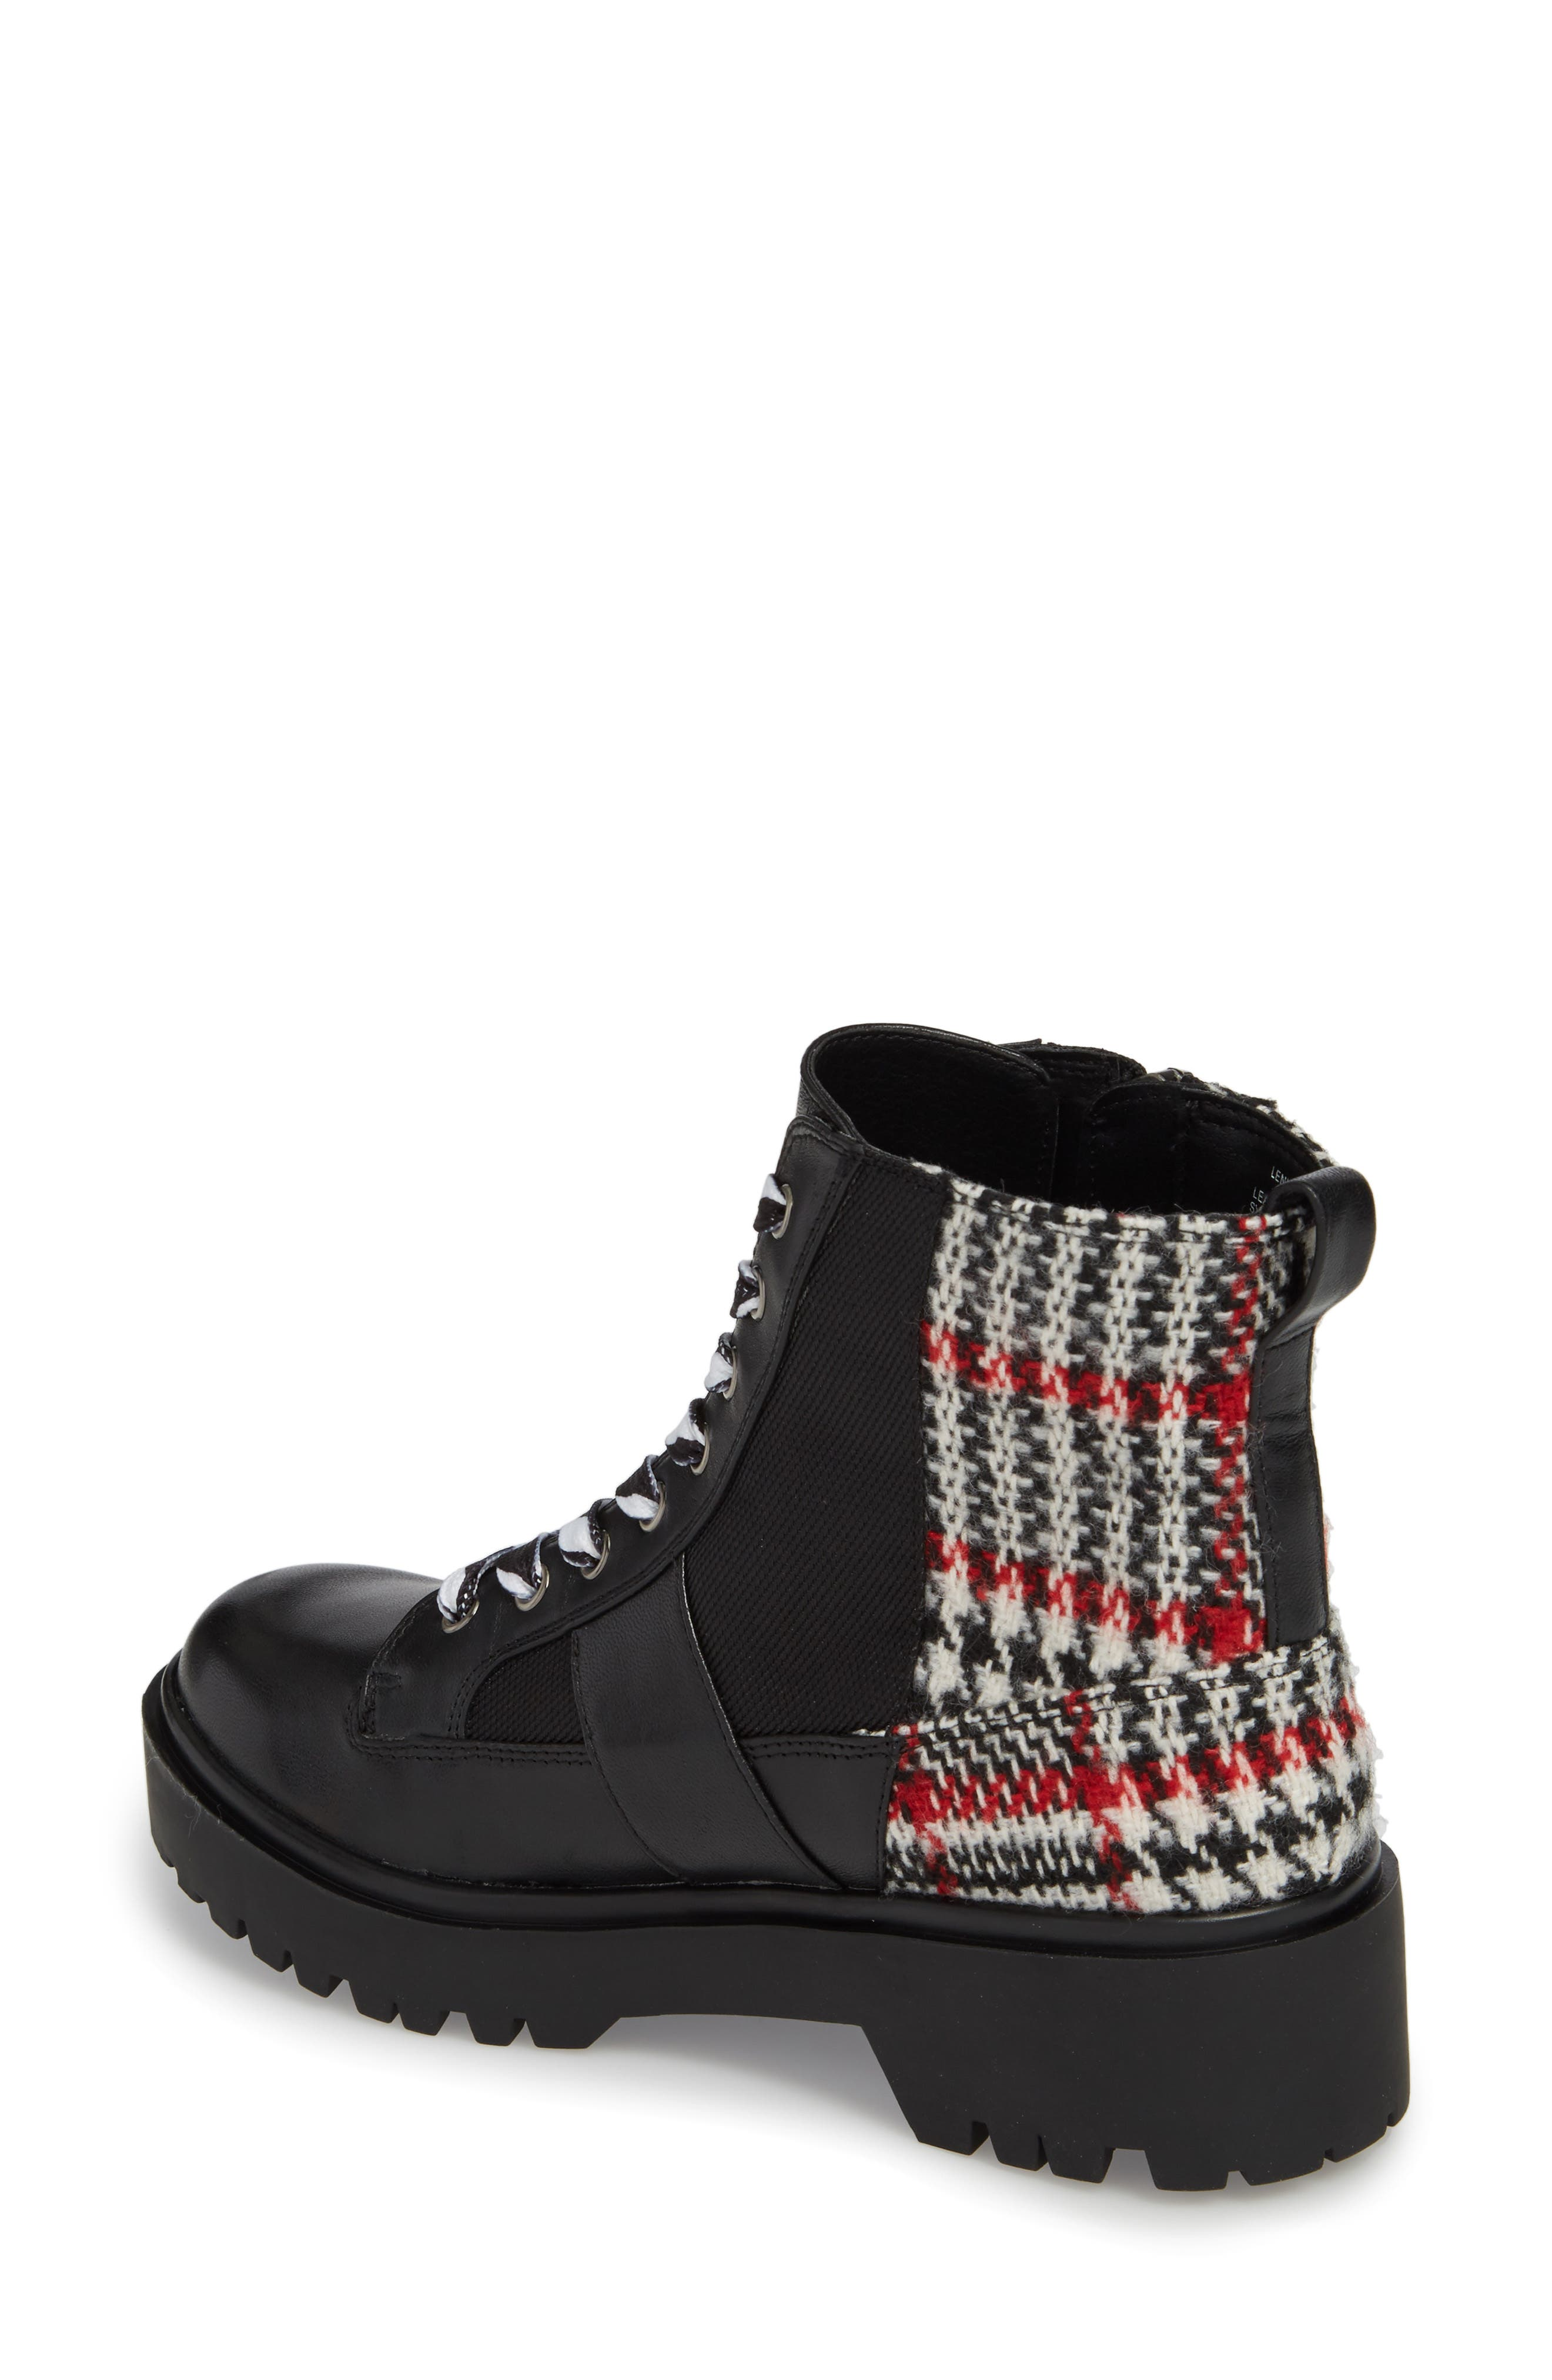 Lennox Combat Boot,                             Alternate thumbnail 2, color,                             Black Multi